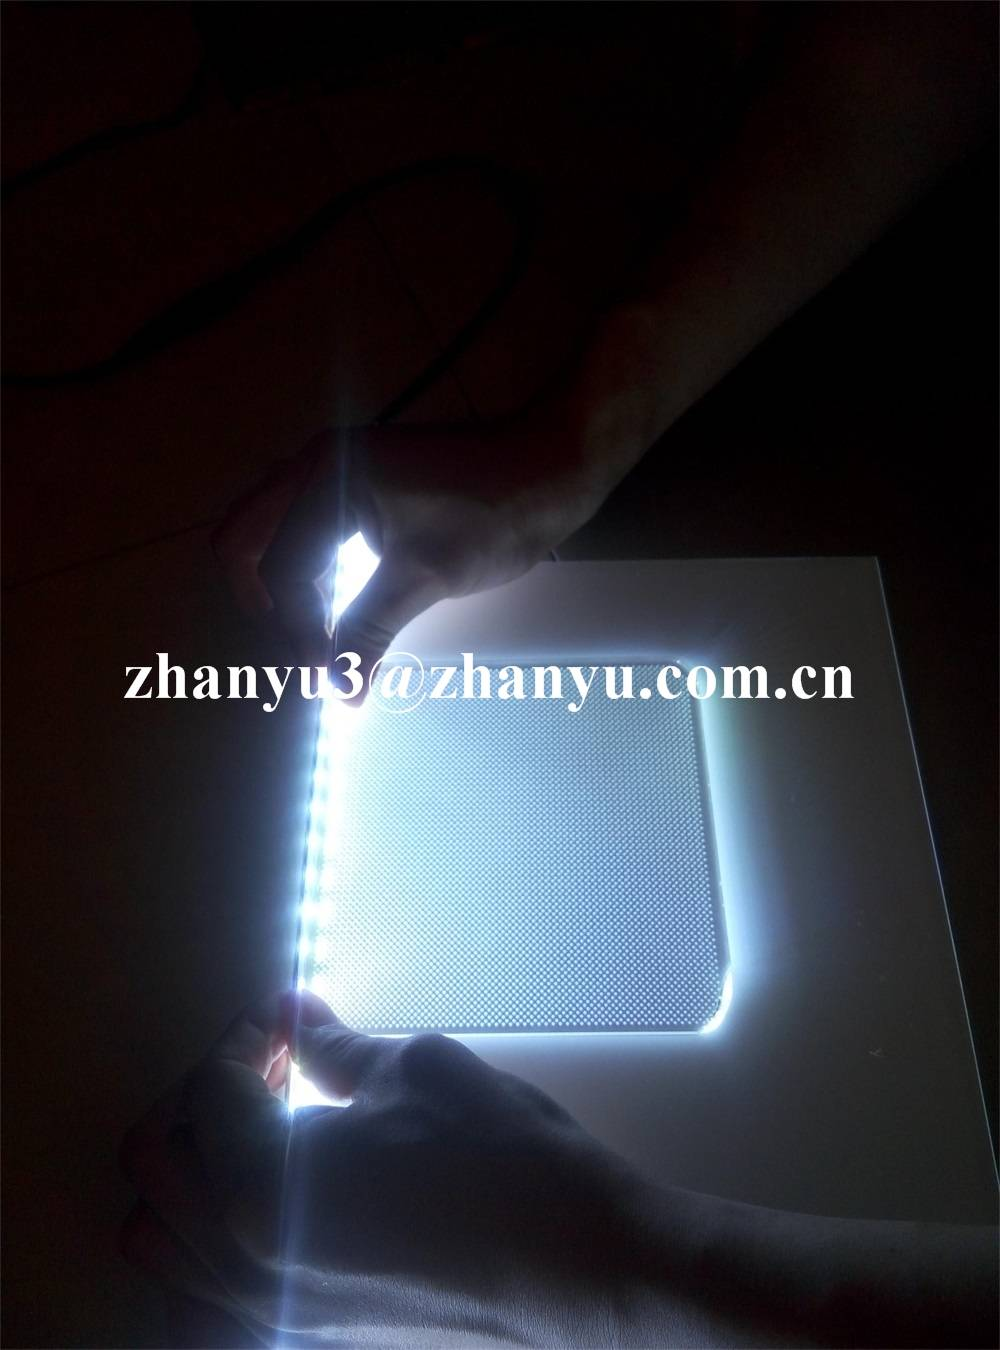 100% New Material Virgin Lucite Laser Dotted Acrylic Light Guide Panel